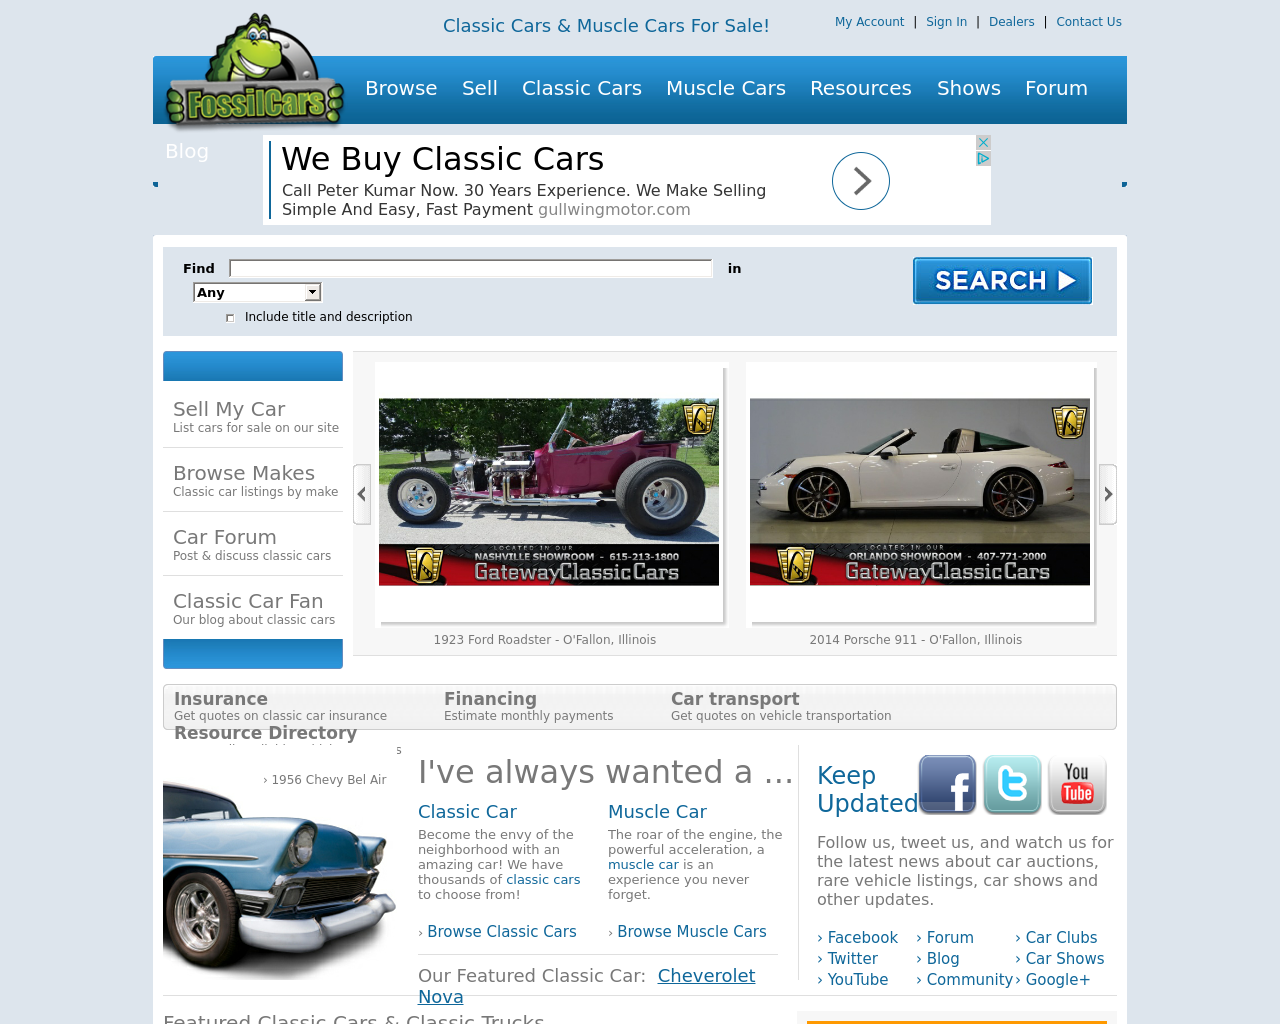 Fossilcars.com-Advertising-Reviews-Pricing